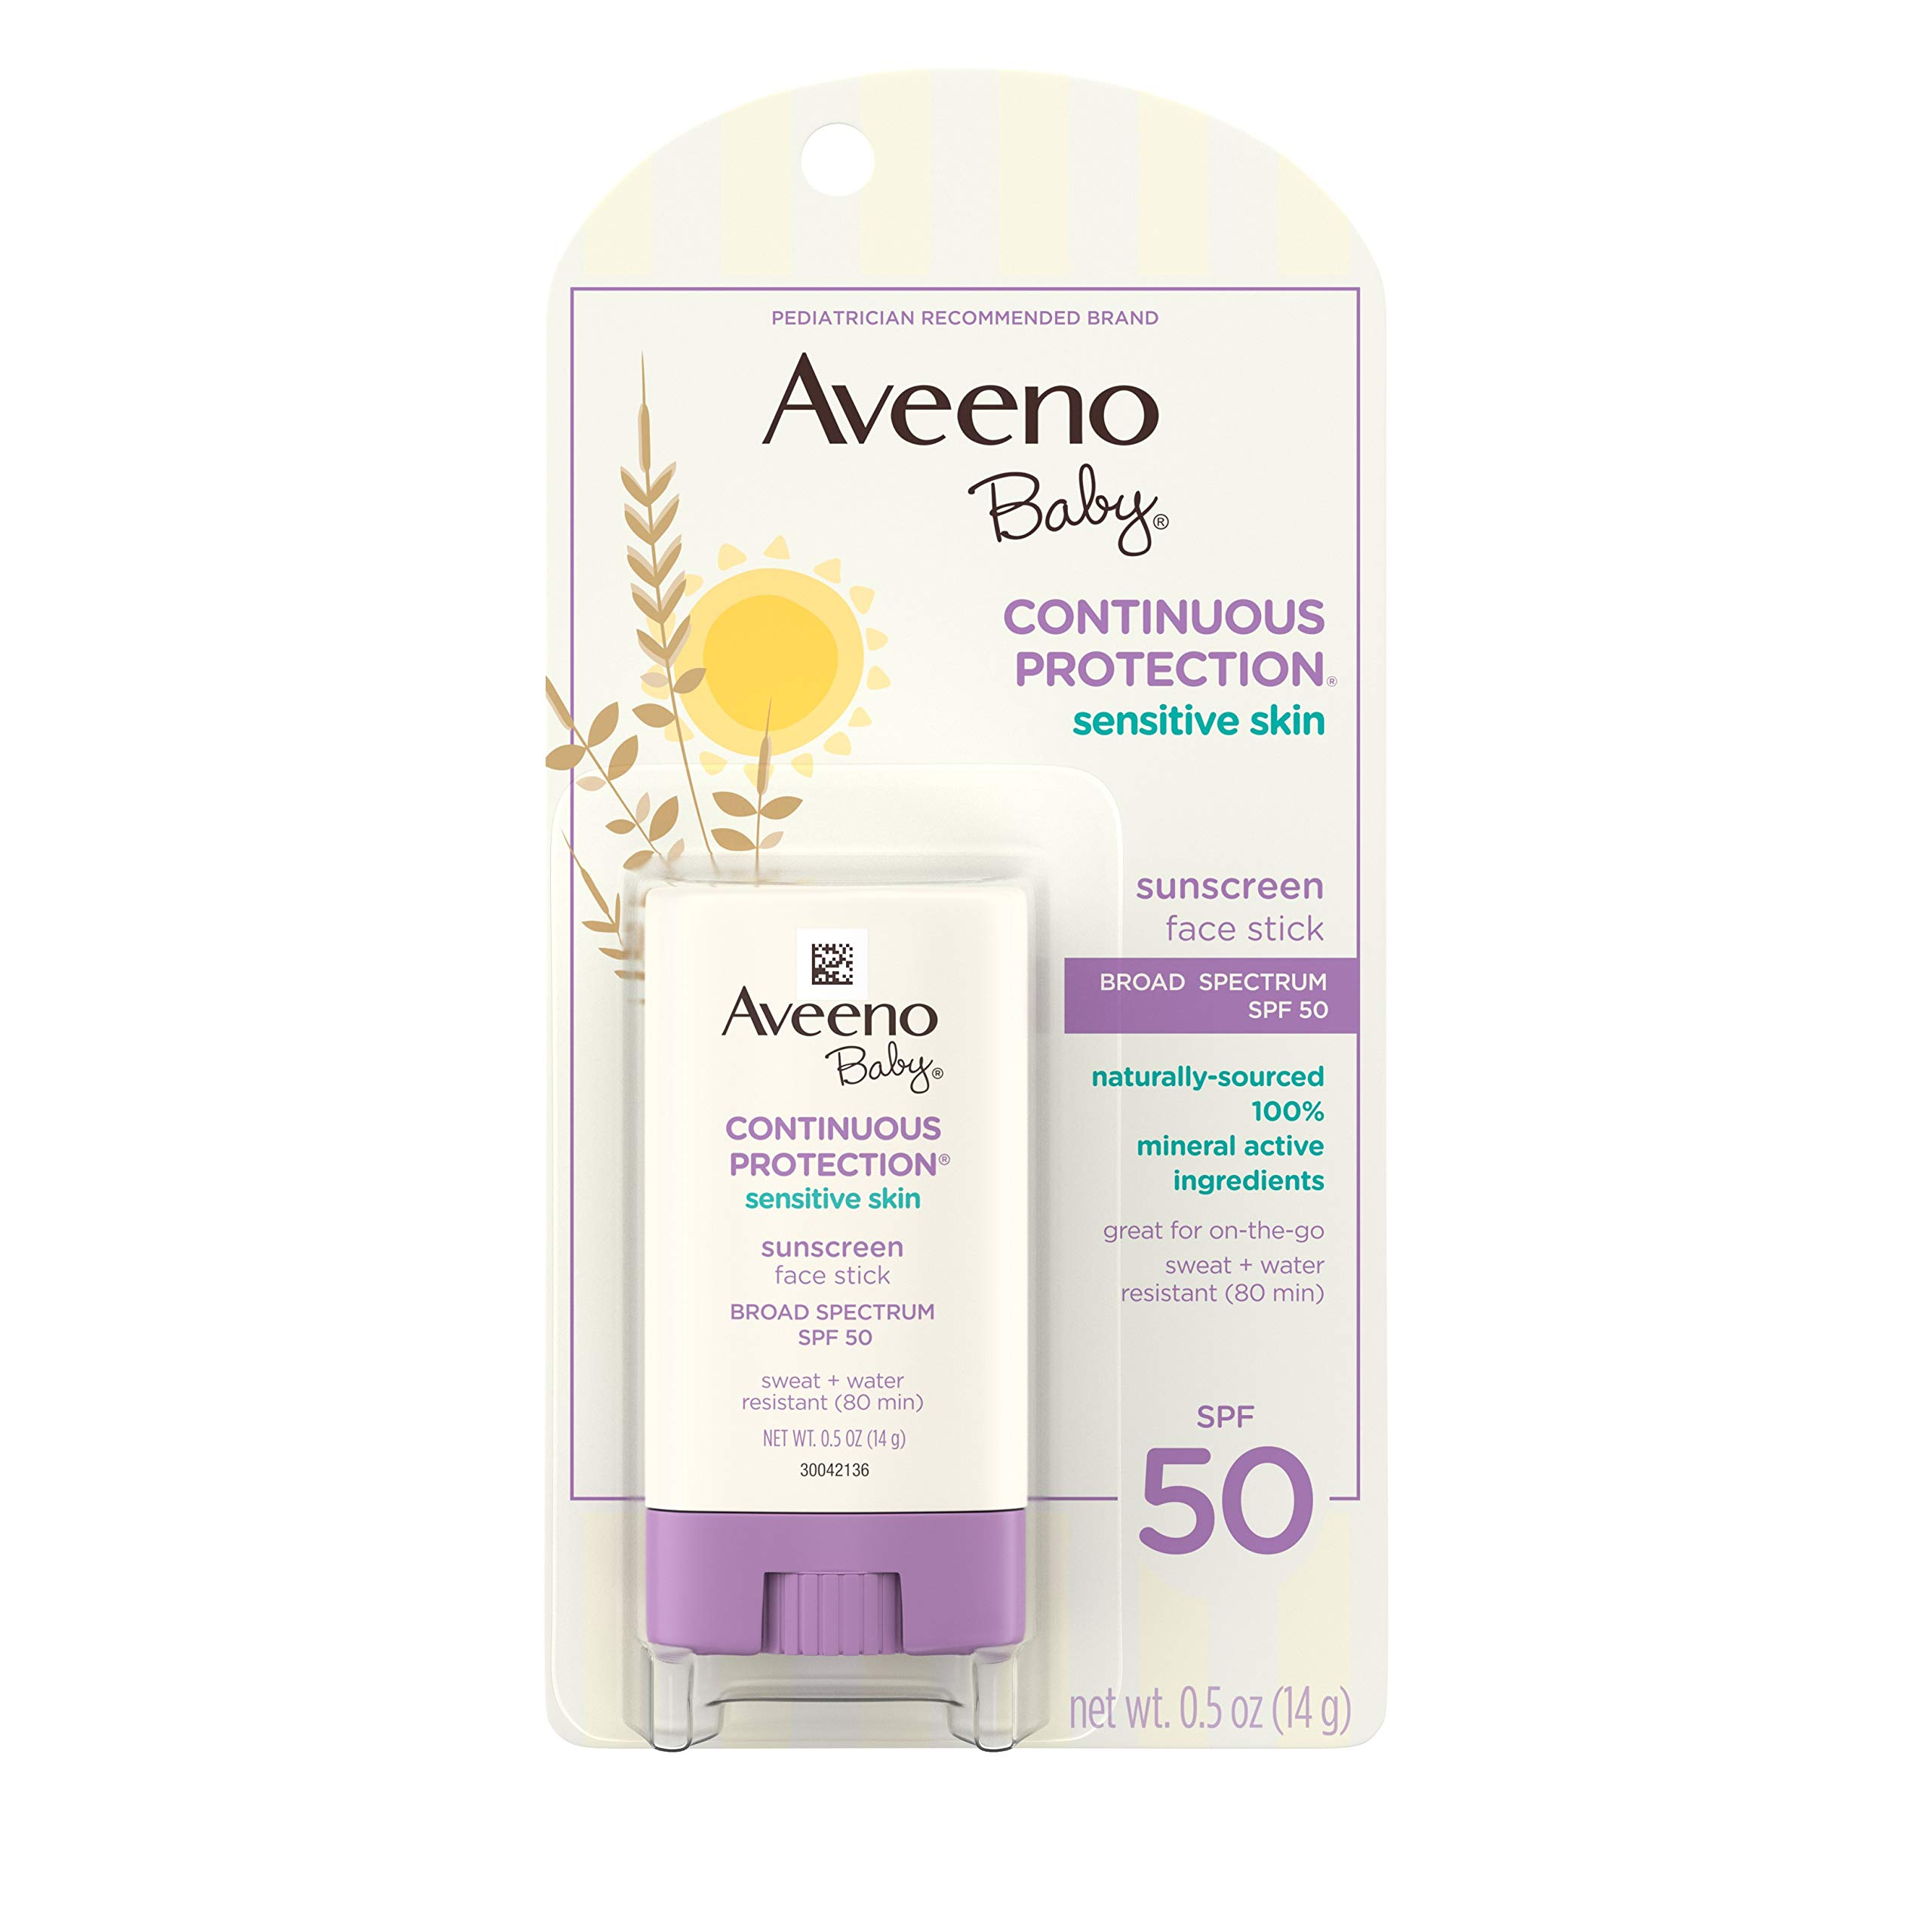 Aveeno Baby Continuous Protection Sensitive Skin Mineral Sunscreen Stick for Face with Broad Spectrum SPF 50, Zinc Oxide & Titanium Dioxide, Oil-Free & Water-Resistant, Travel-Size, 0.5 oz (Pack of 2)